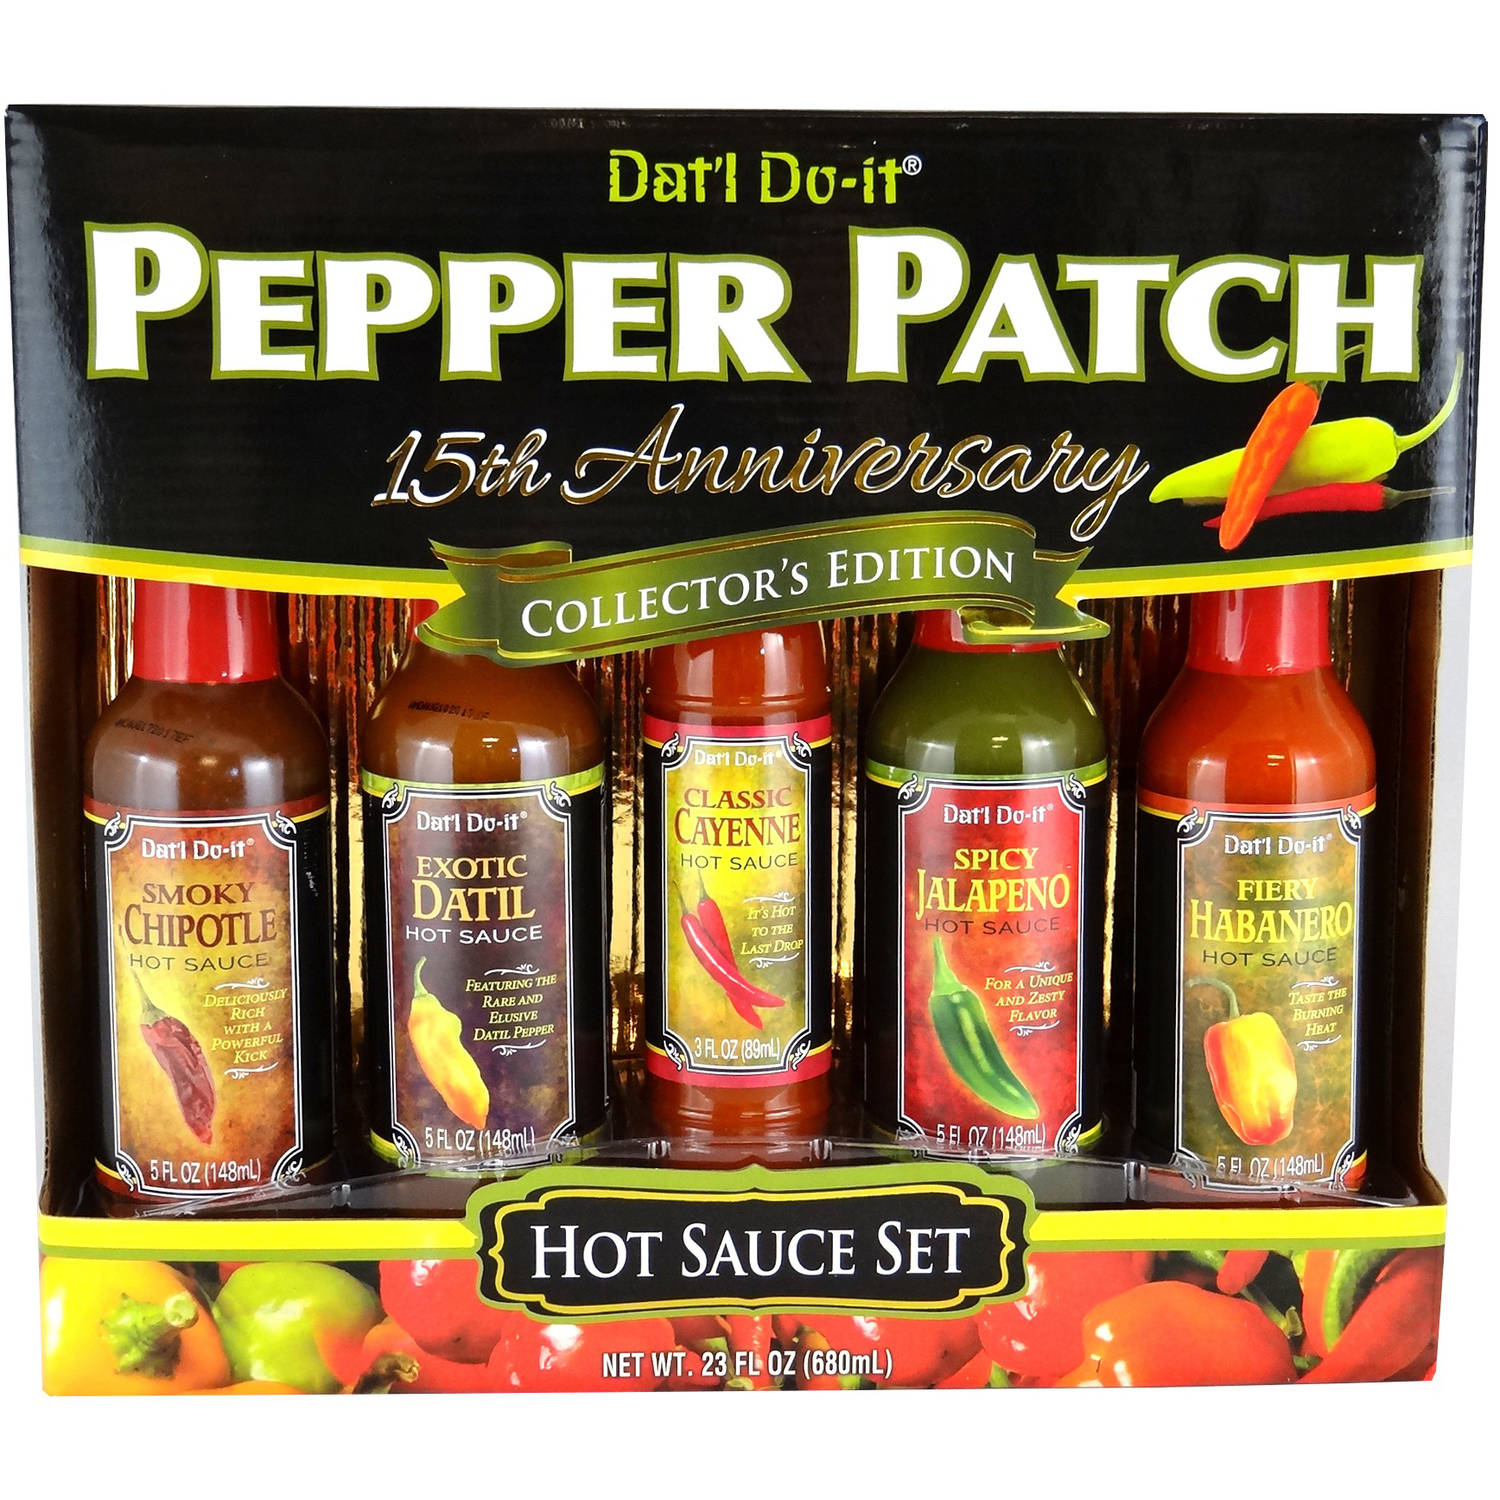 Dat'l Do It Pepper Patch Hot Sauce Holiday Gift Set, 5 piece